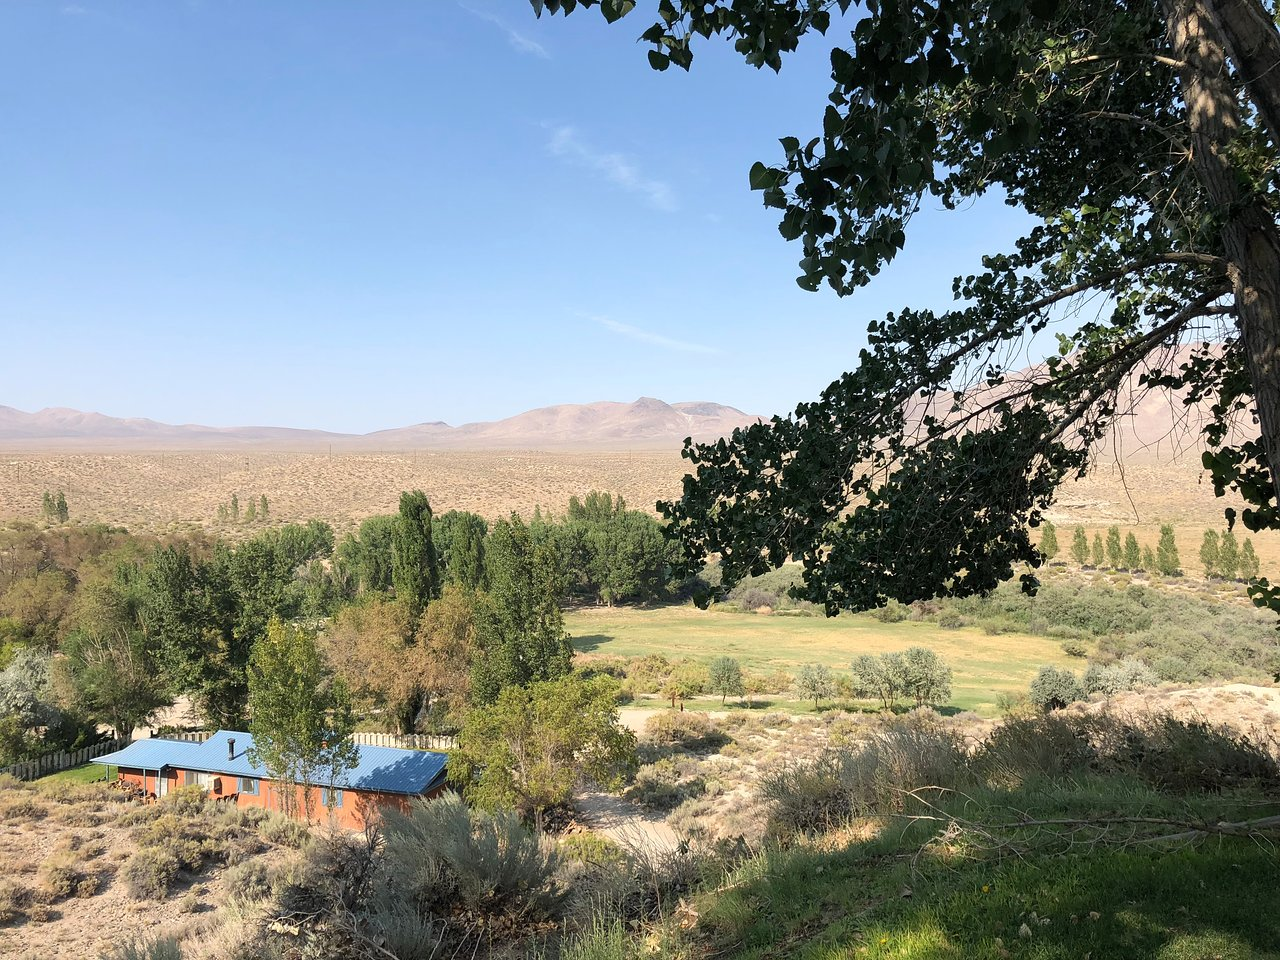 WALKER RIVER RESORT - Updated 2019 Campground Reviews (Smith, NV